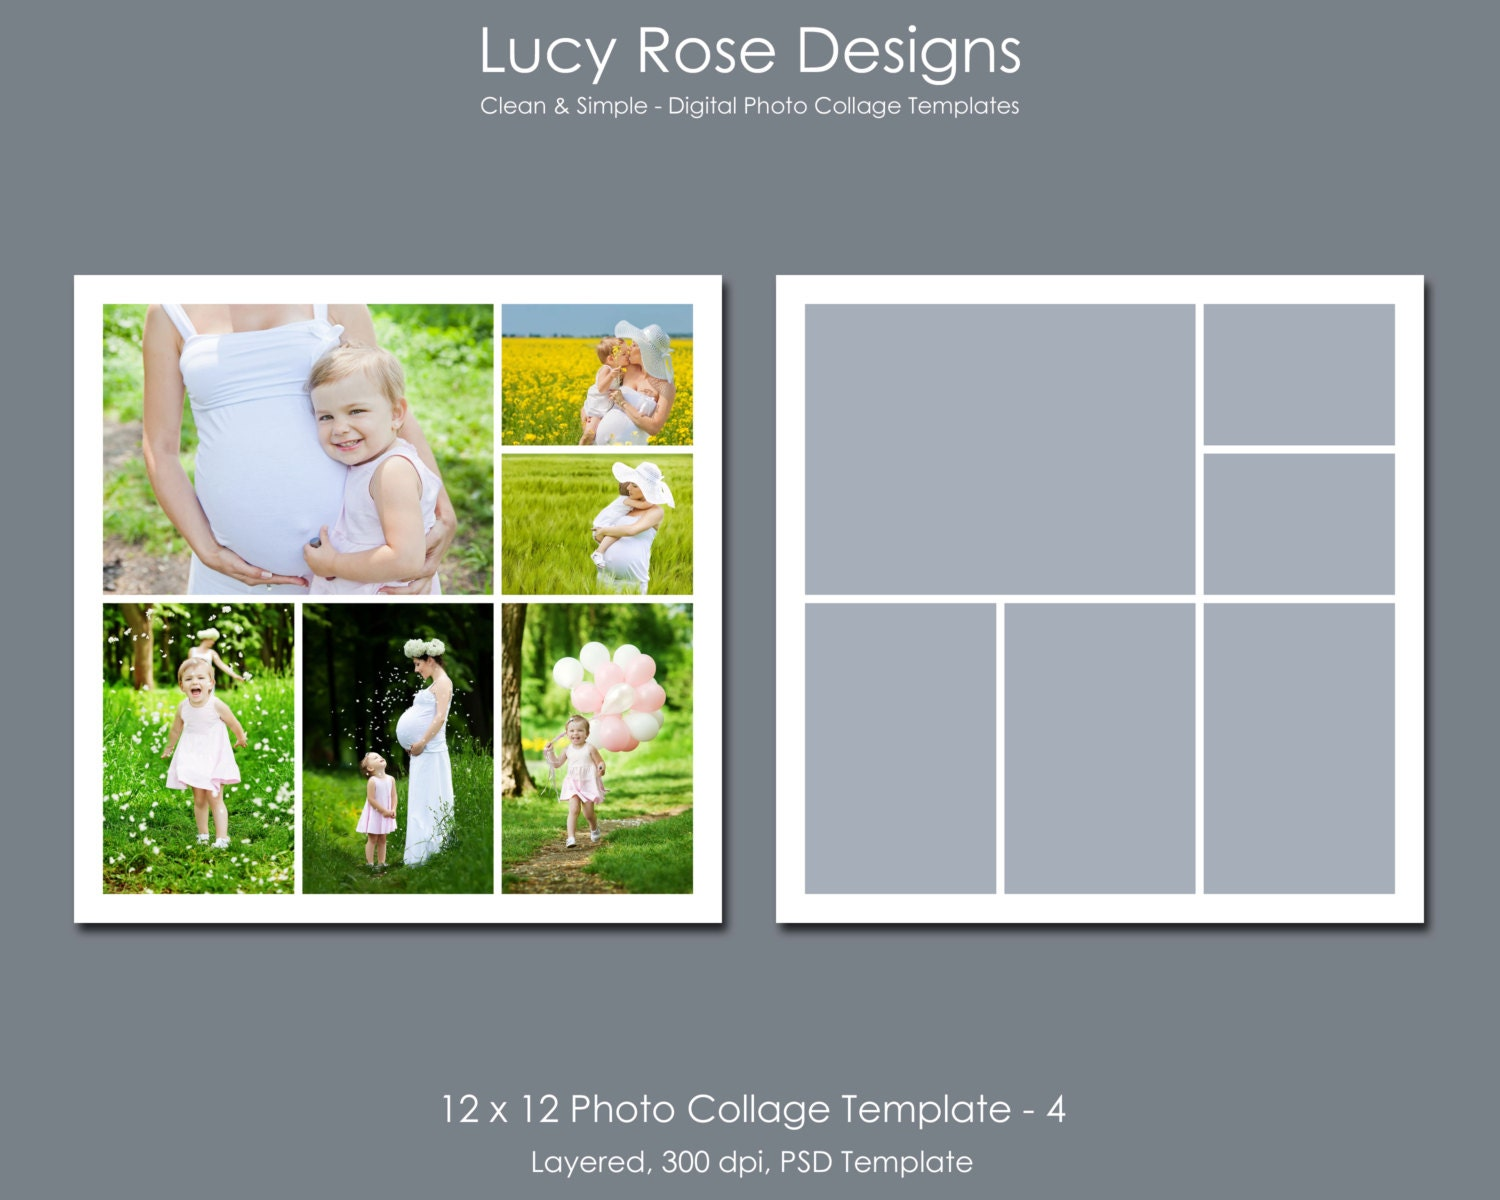 4 picture collage template - 12 x 12 photo collage template 4